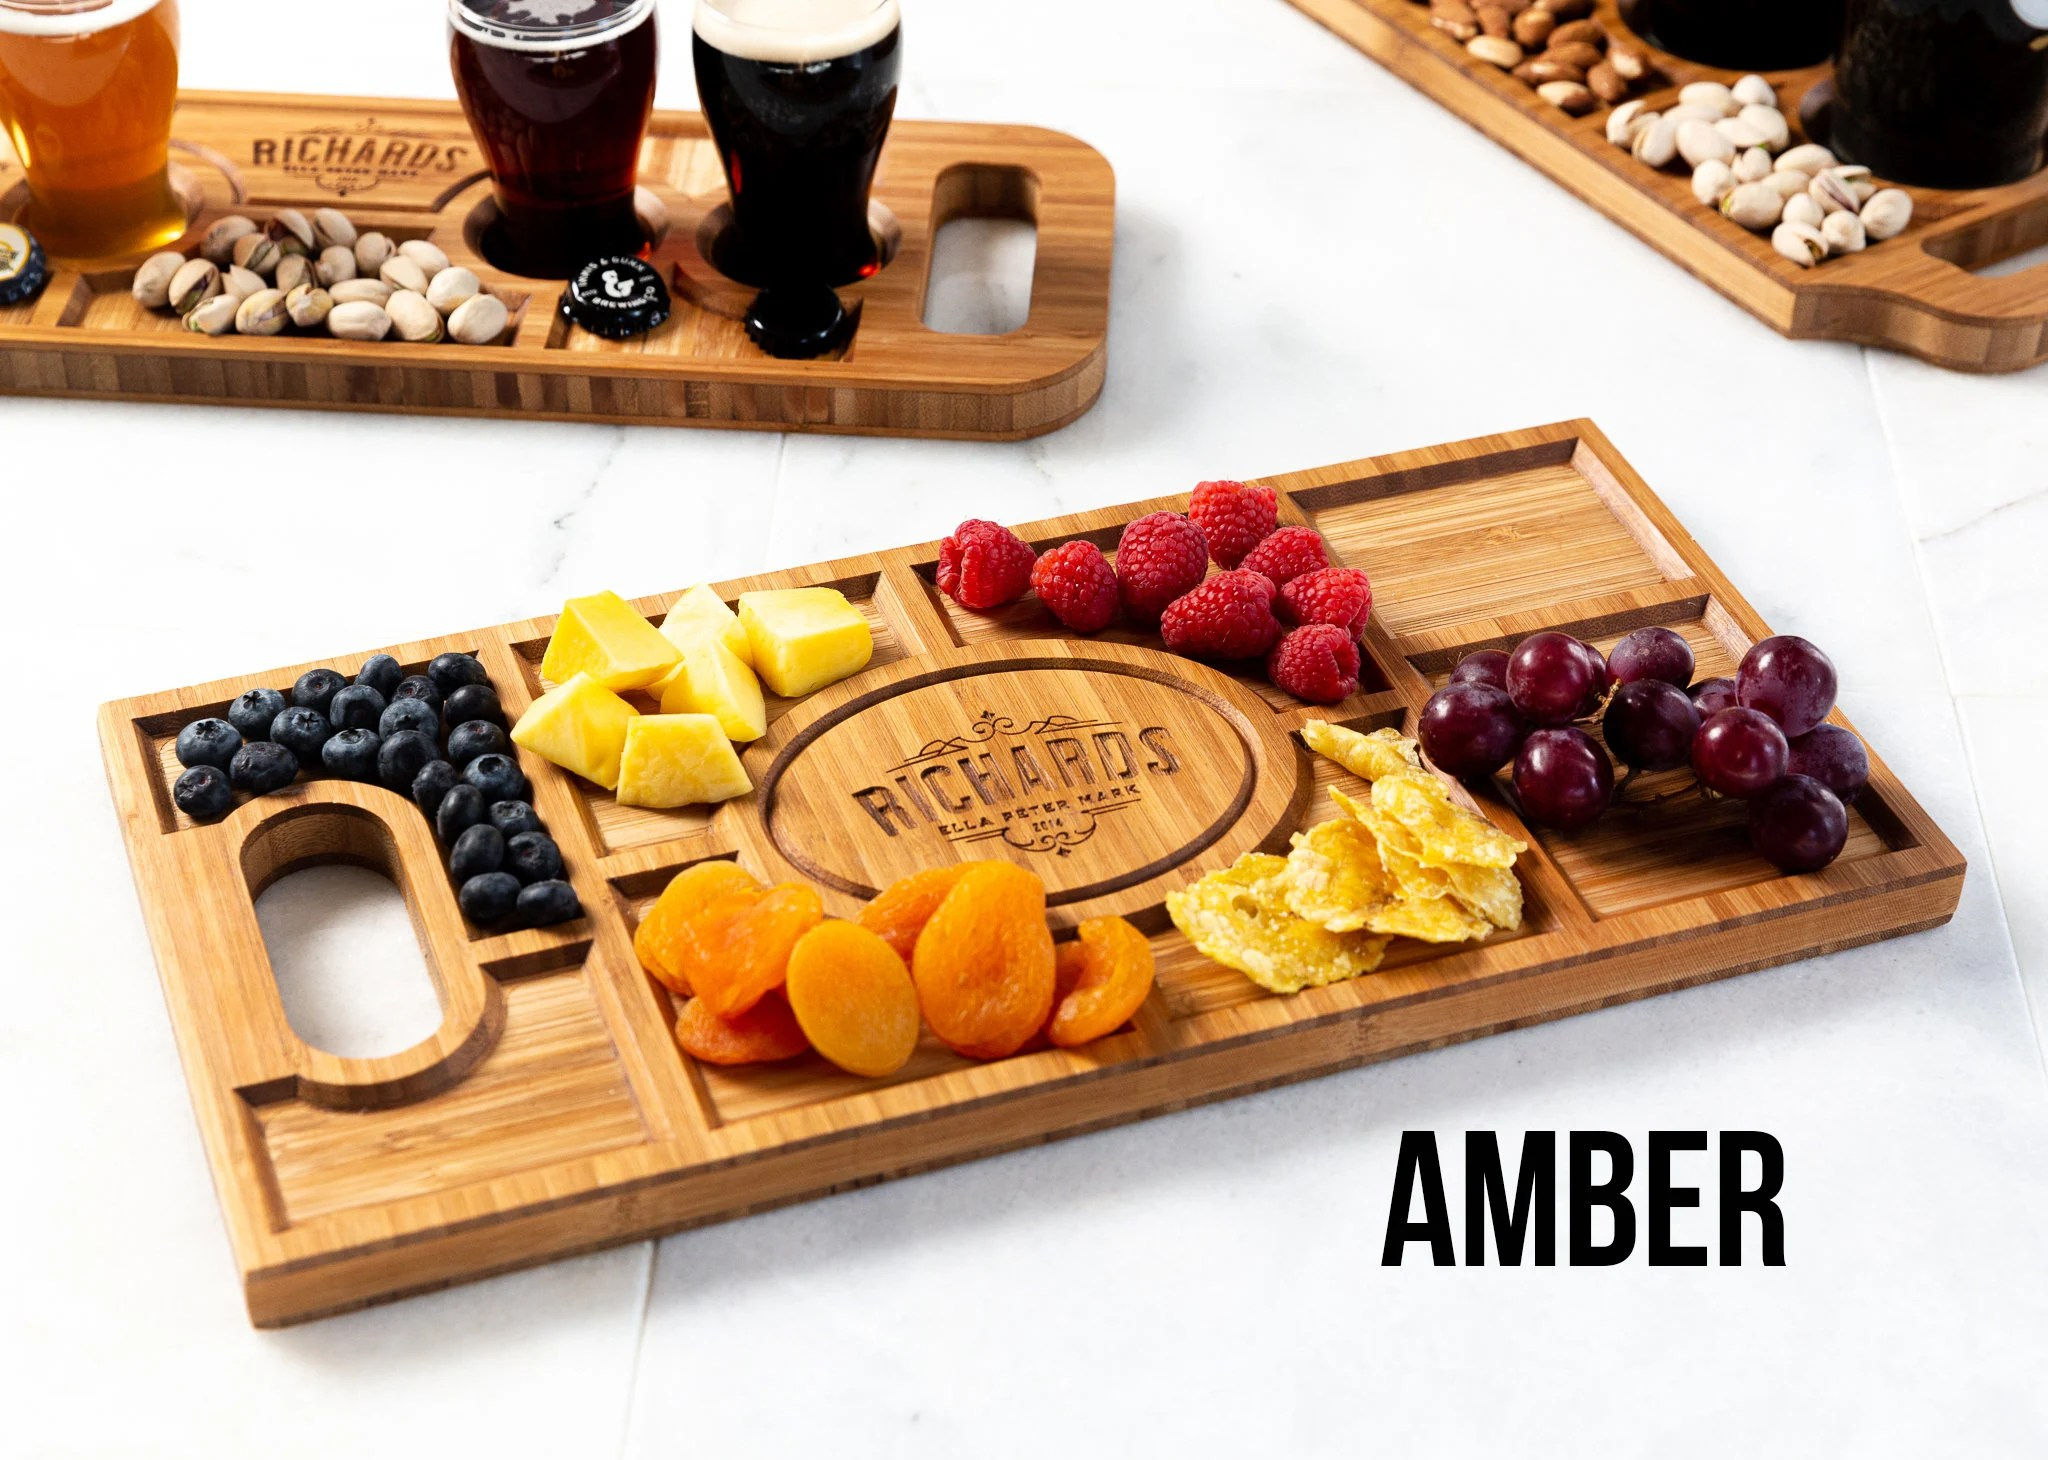 Personalized Charcuterie Planks and Beer Flights  4 Styles image 6